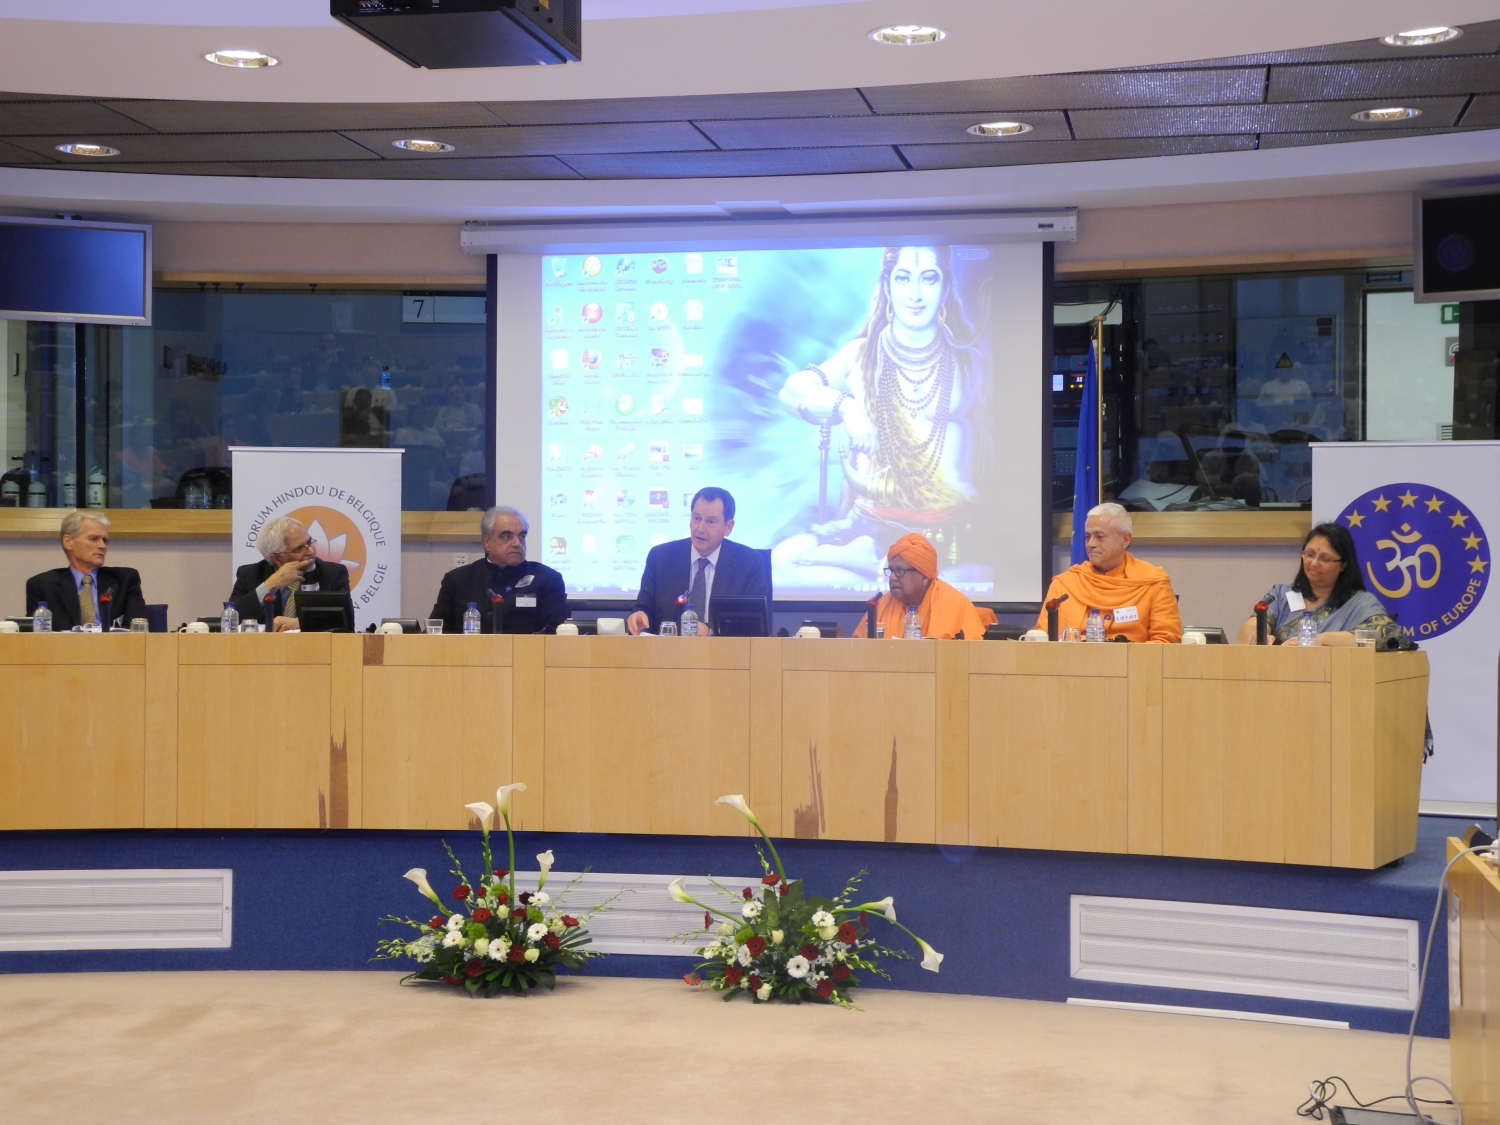 Hindu Forum of Europe -  European Parliament in Brussels, Belgium - 2012, March